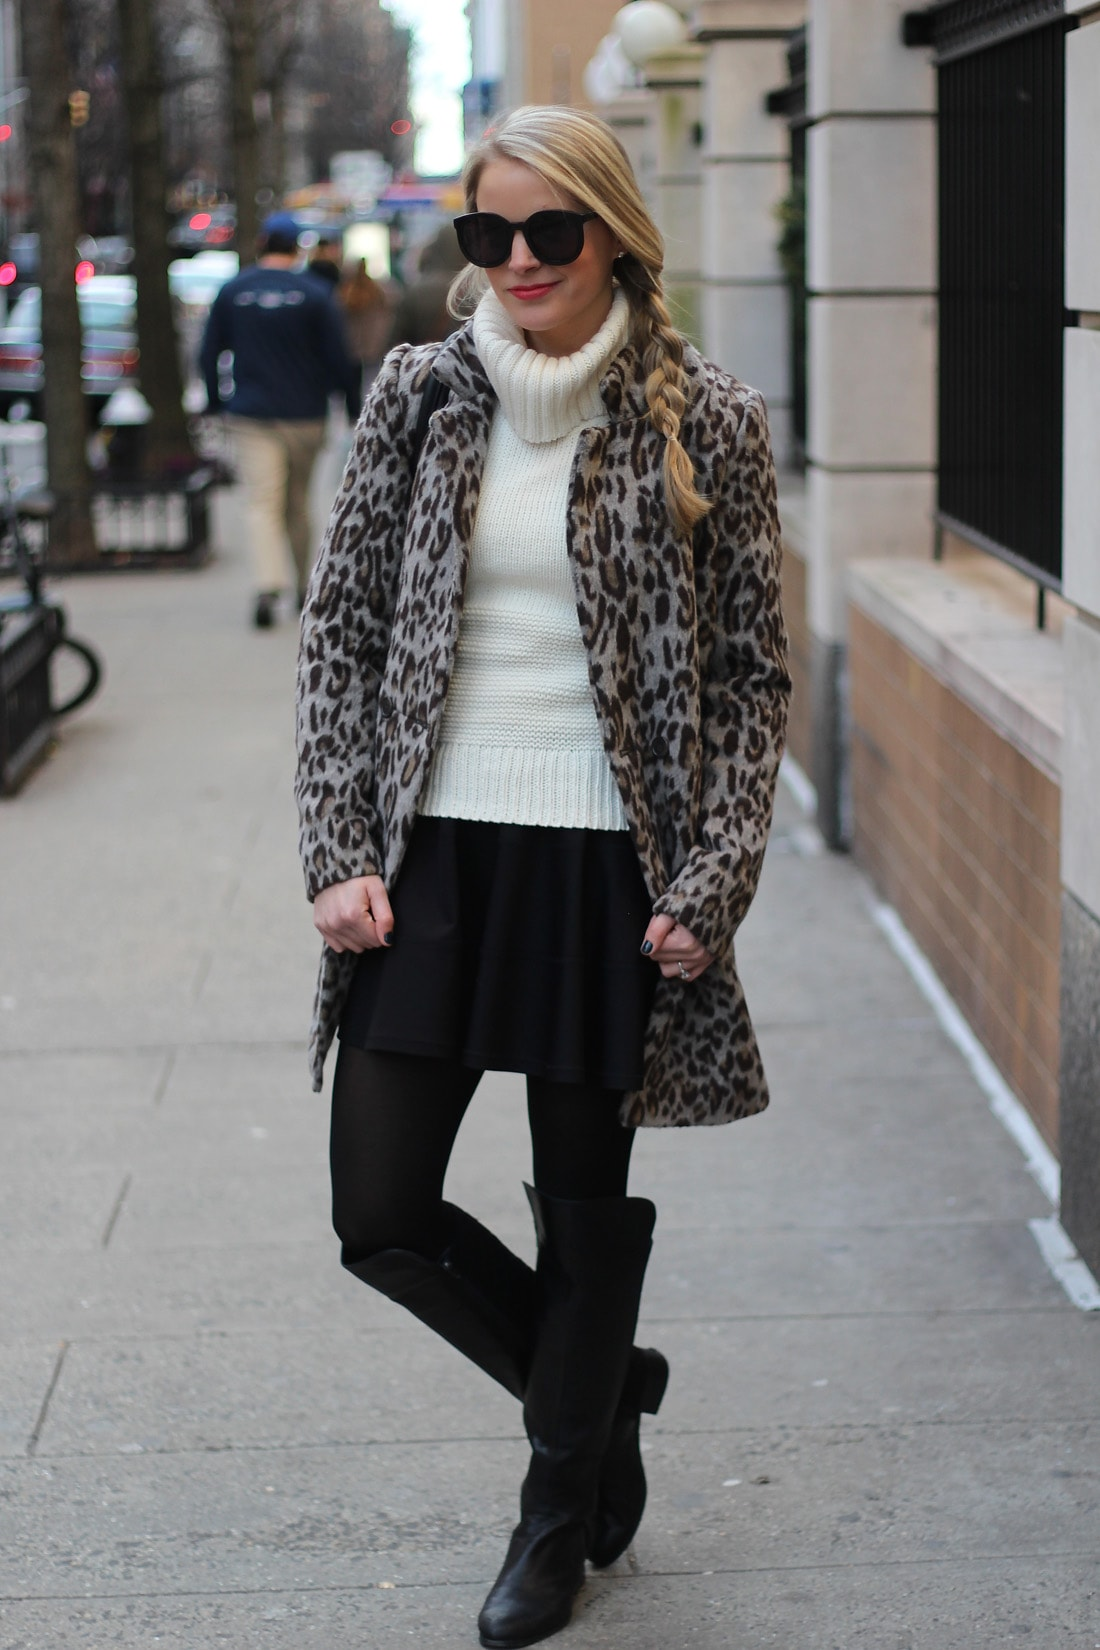 leopard coat, turtleneck sweater, fit and flare skirt, over the knee boots